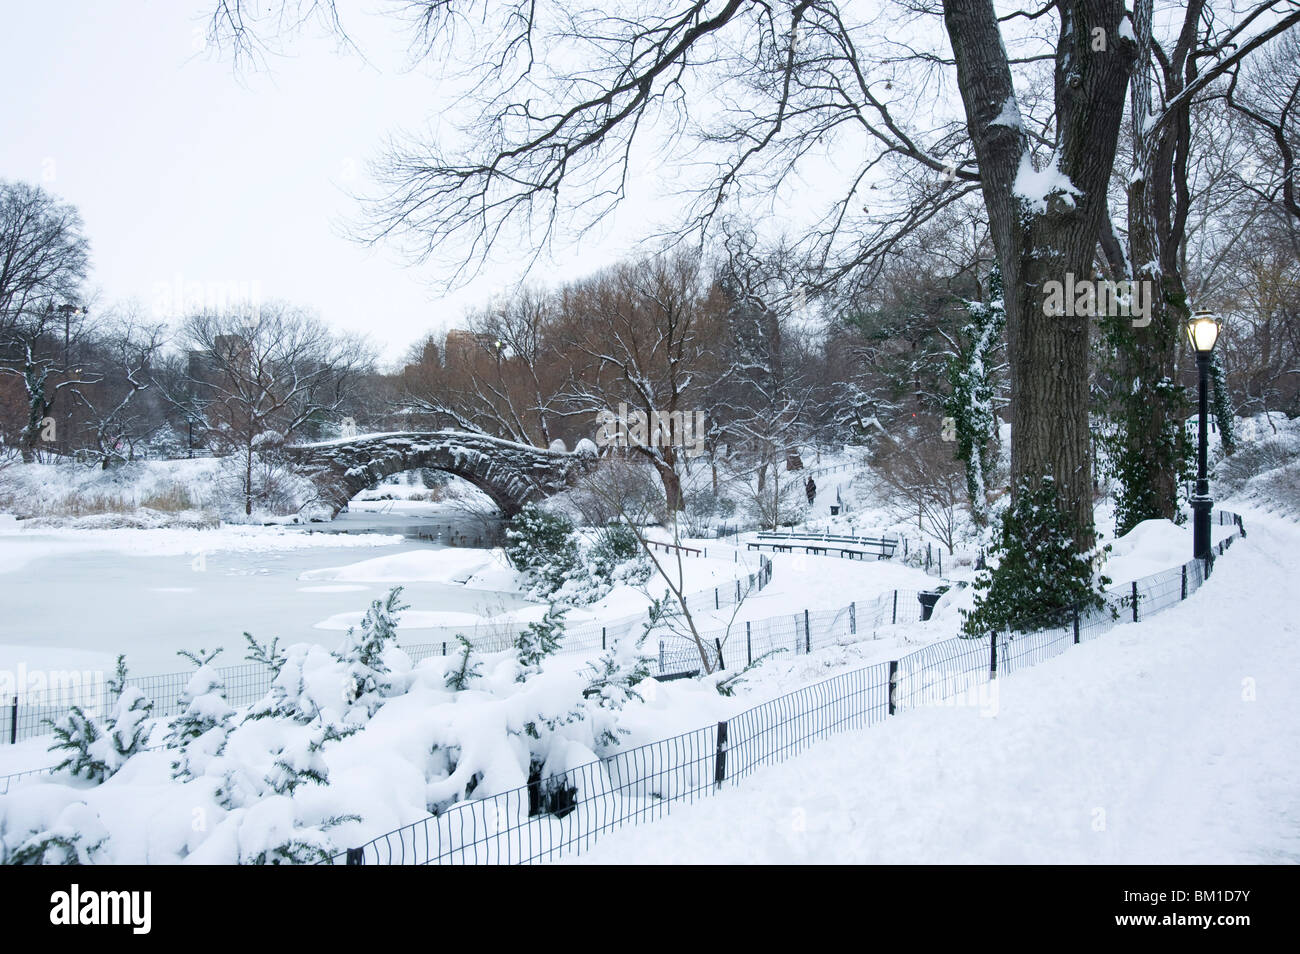 An early morning view of the Gapstow Bridge after a snowfall in Central Park, New York City, New York State, USA - Stock Image